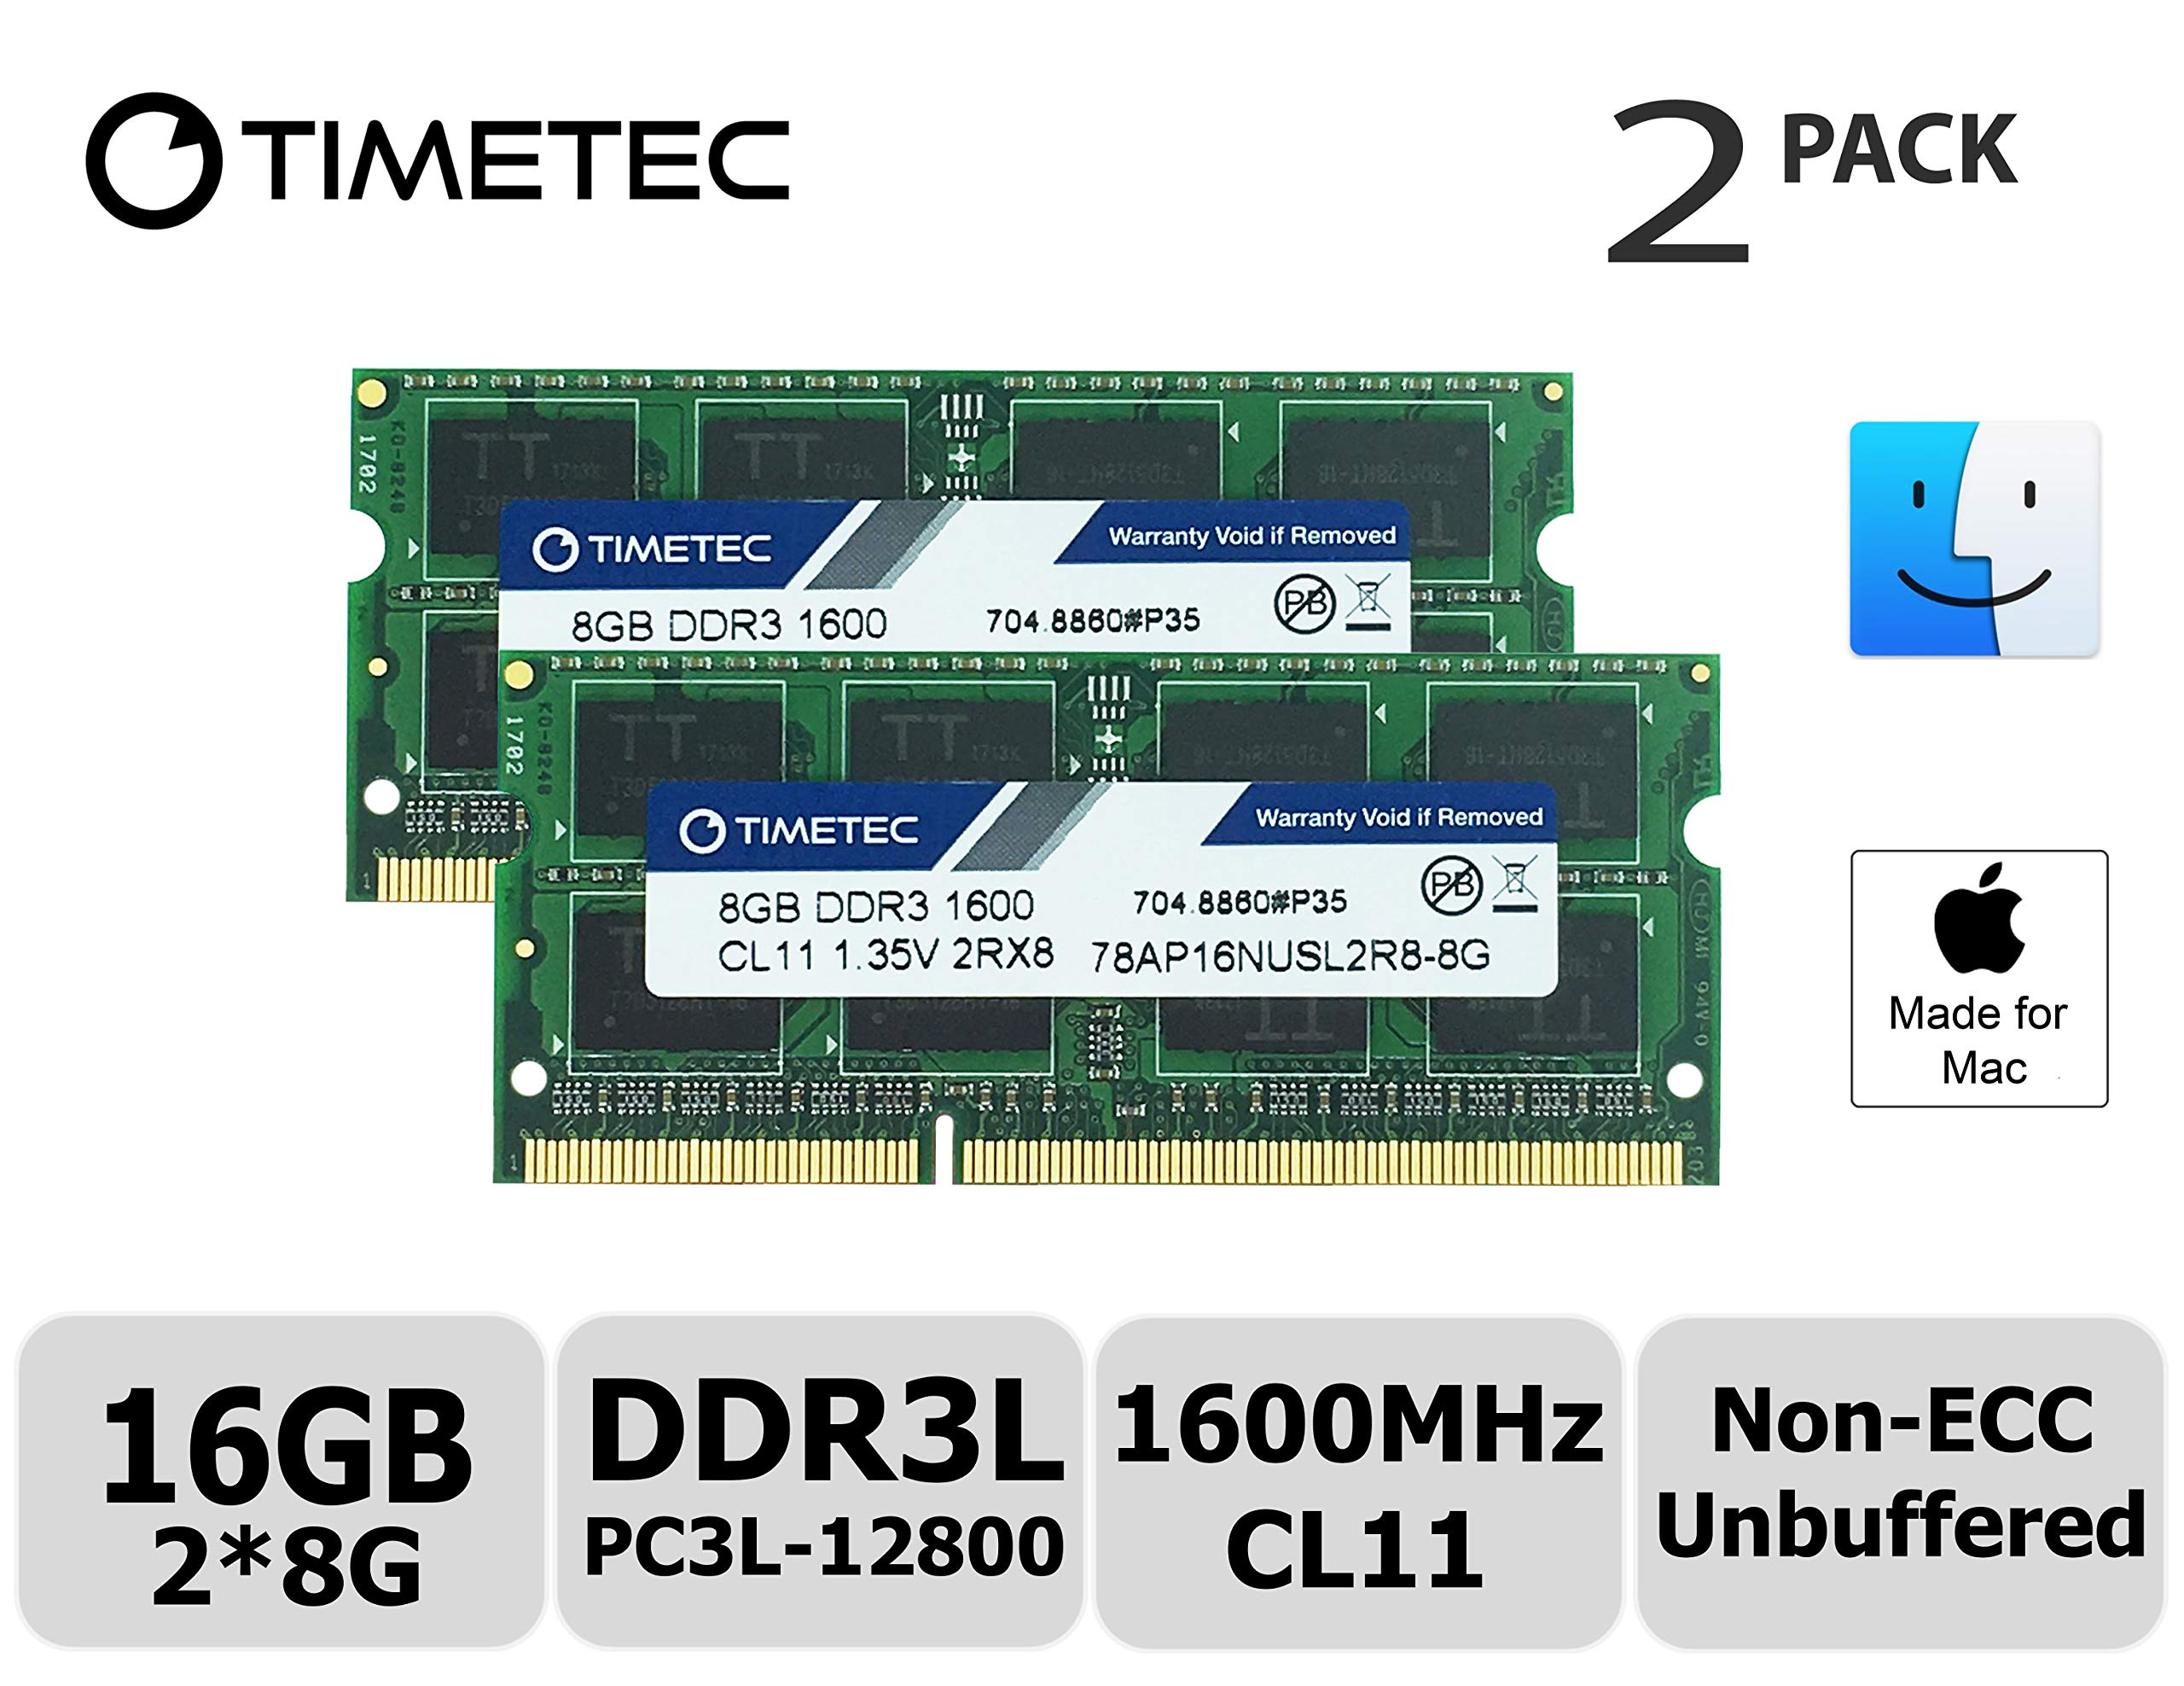 Timetec Hynix IC Apple 16GB Kit (2x8GB) DDR3L 1600MHz PC3L-12800 SODIMM Memory upgrade For MacBook Pro13-inch/15-inch Mid 2012, iMac 21.5-inch Late 2012/ Early/Late 2013(16GB Kit (2x8GB)) by Timetec